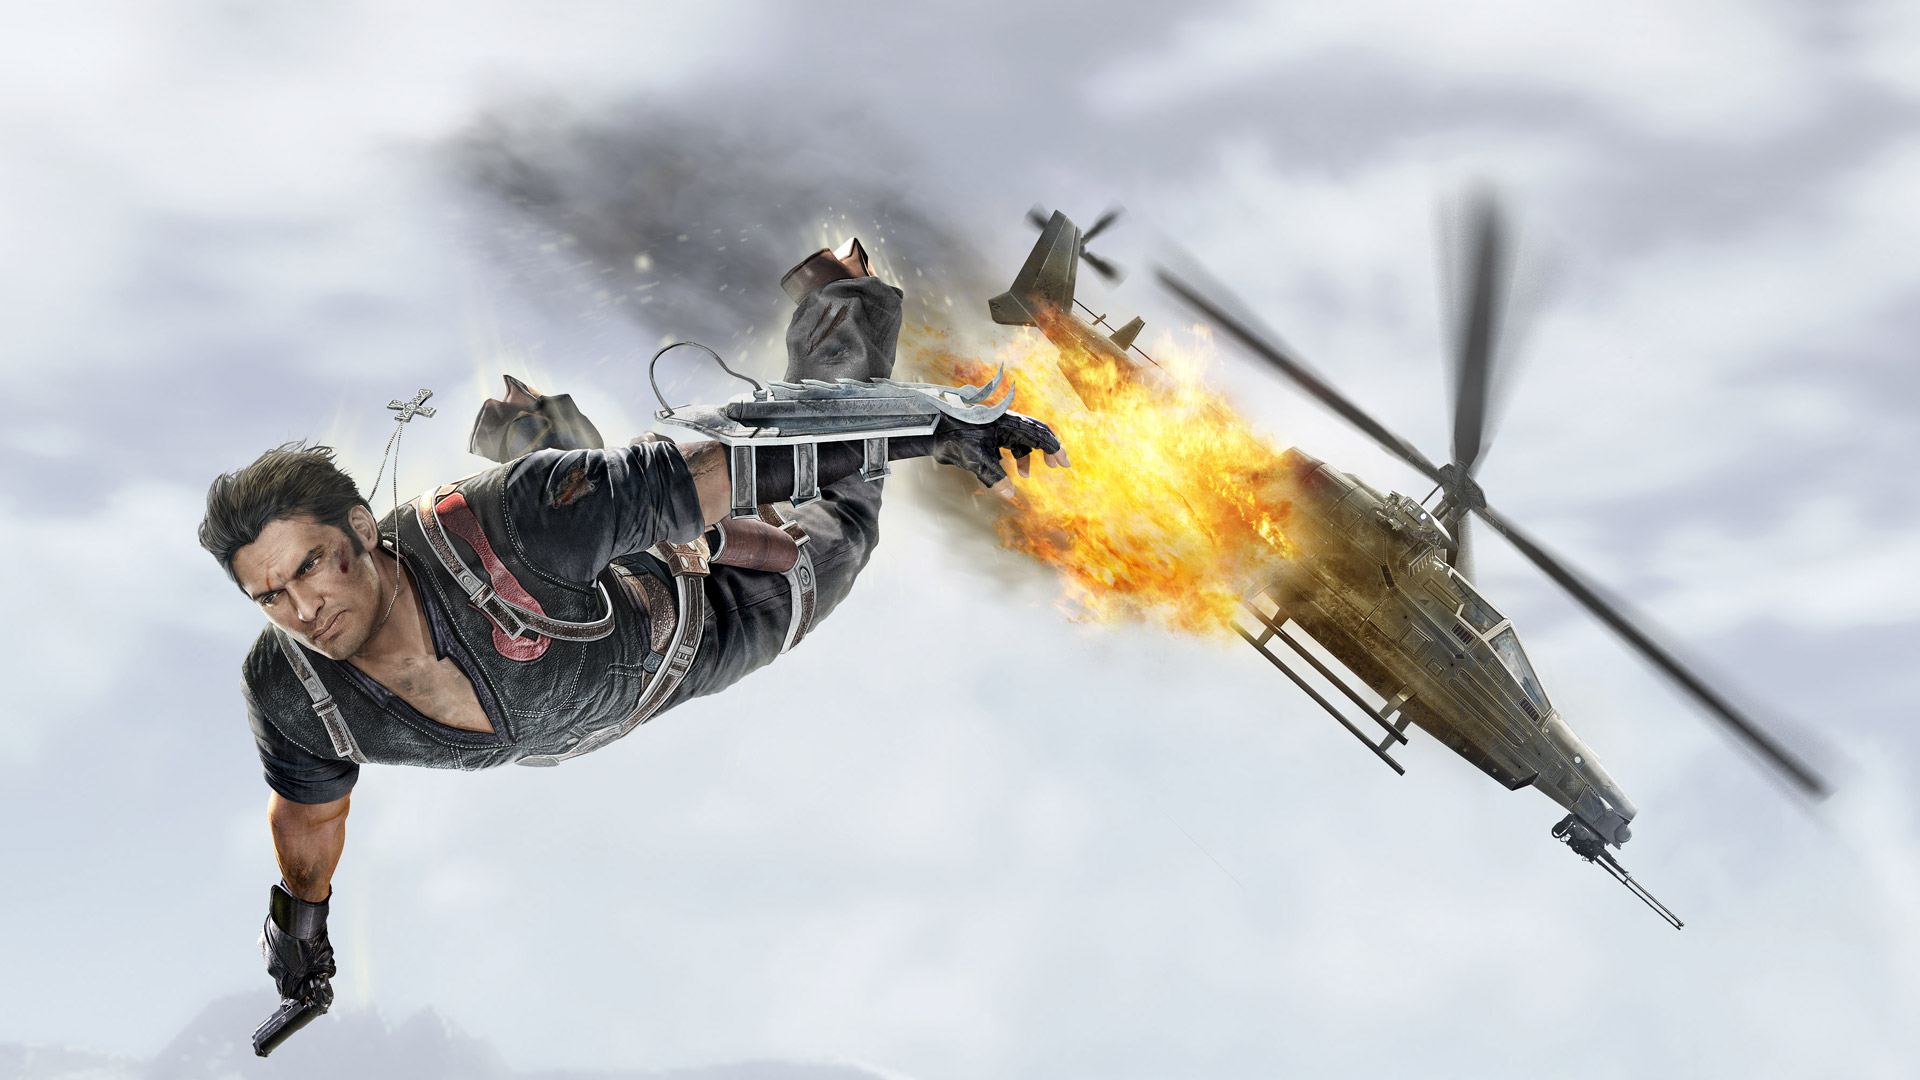 Just Cause 2 Wallpaper in 1920x1080